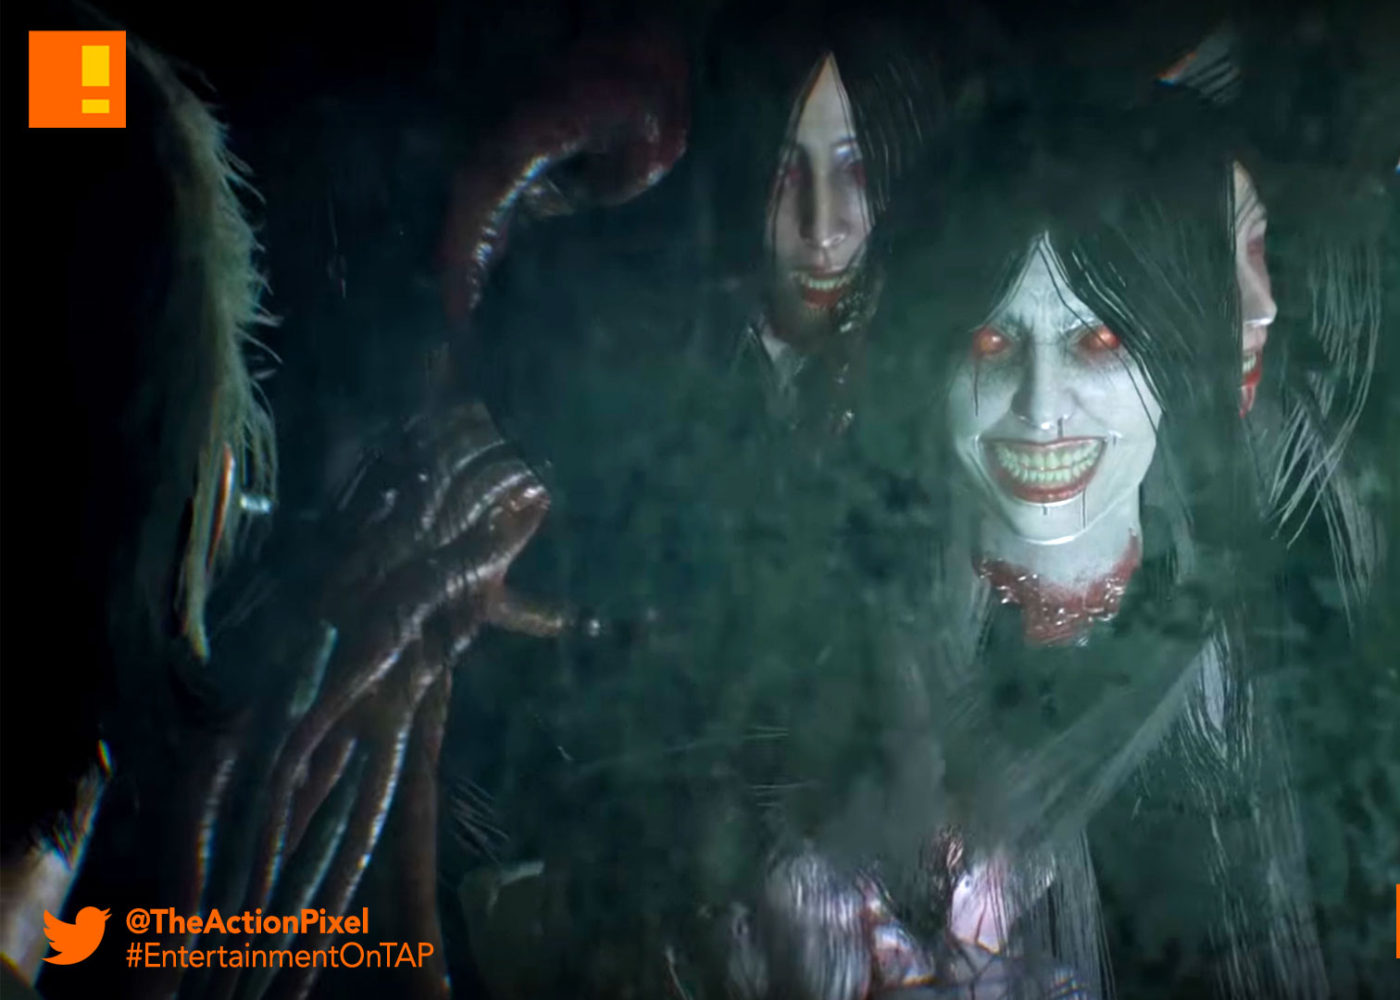 the evil within 2, the gruesome giggling guardian, trailer, gameplay, the evil within, entertainment on tap, the action pixel